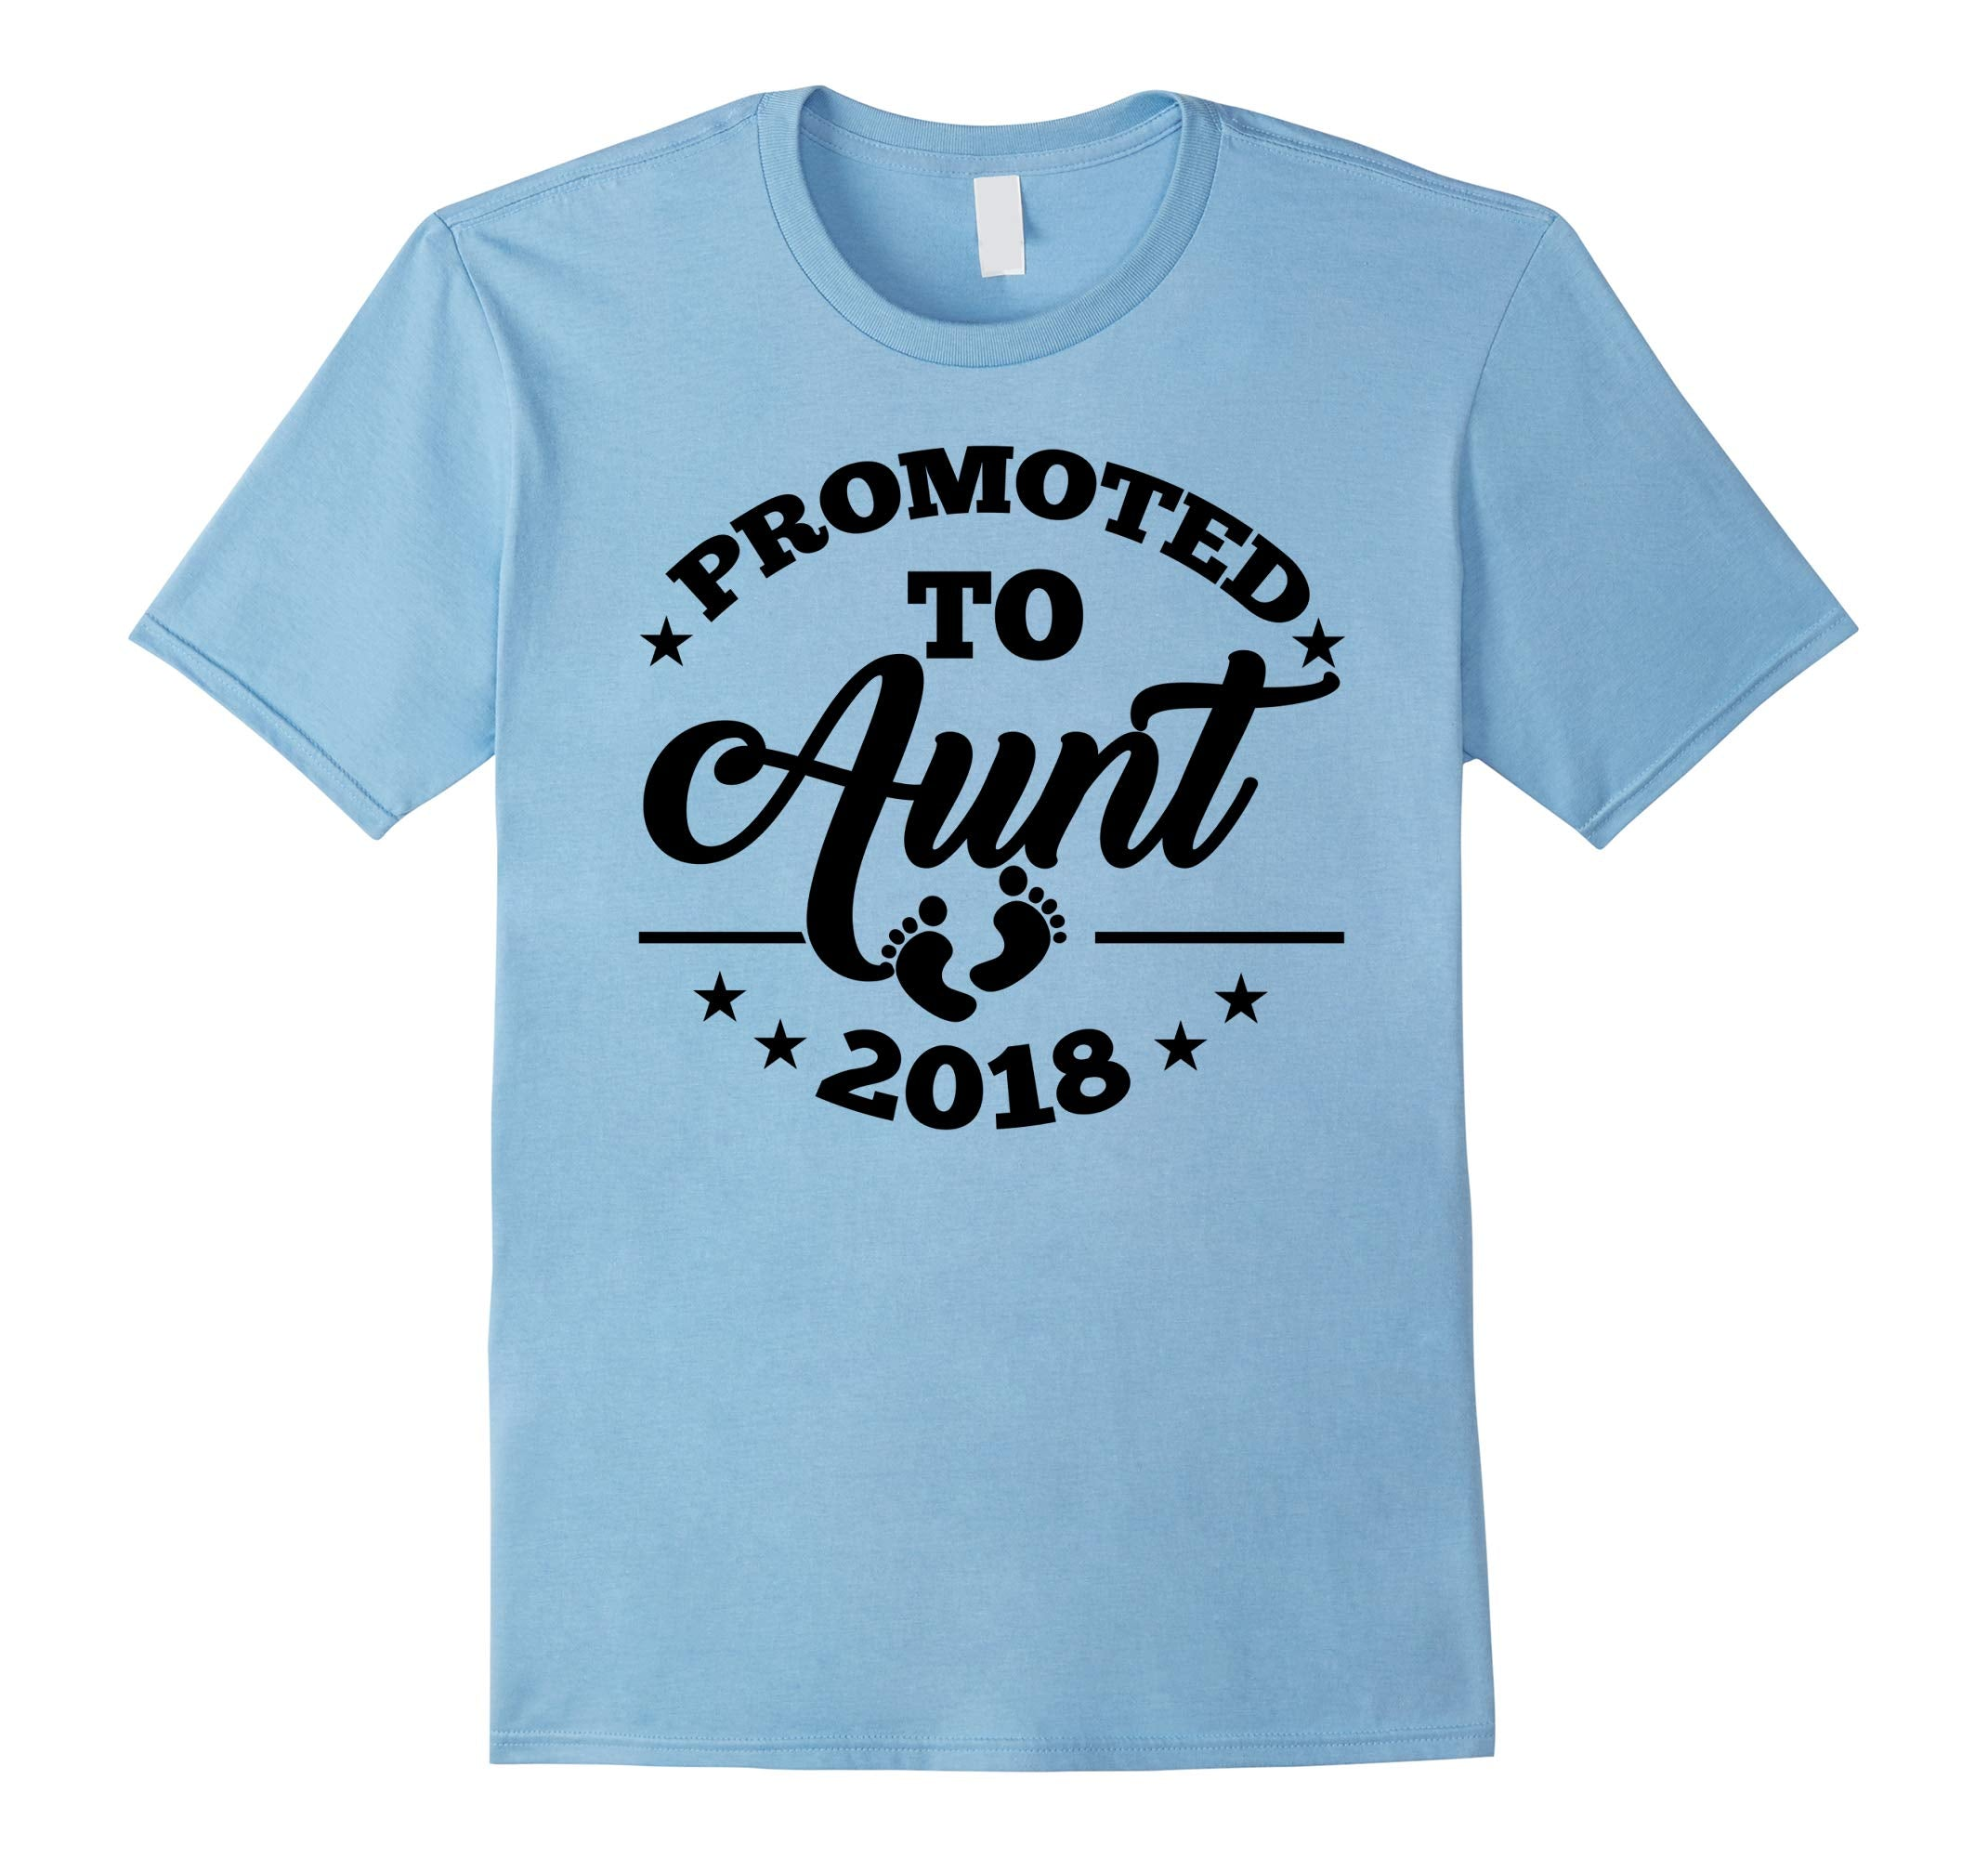 Promoted To Aunt 2018 Shirt | New Aunt Announcement T-Shirt